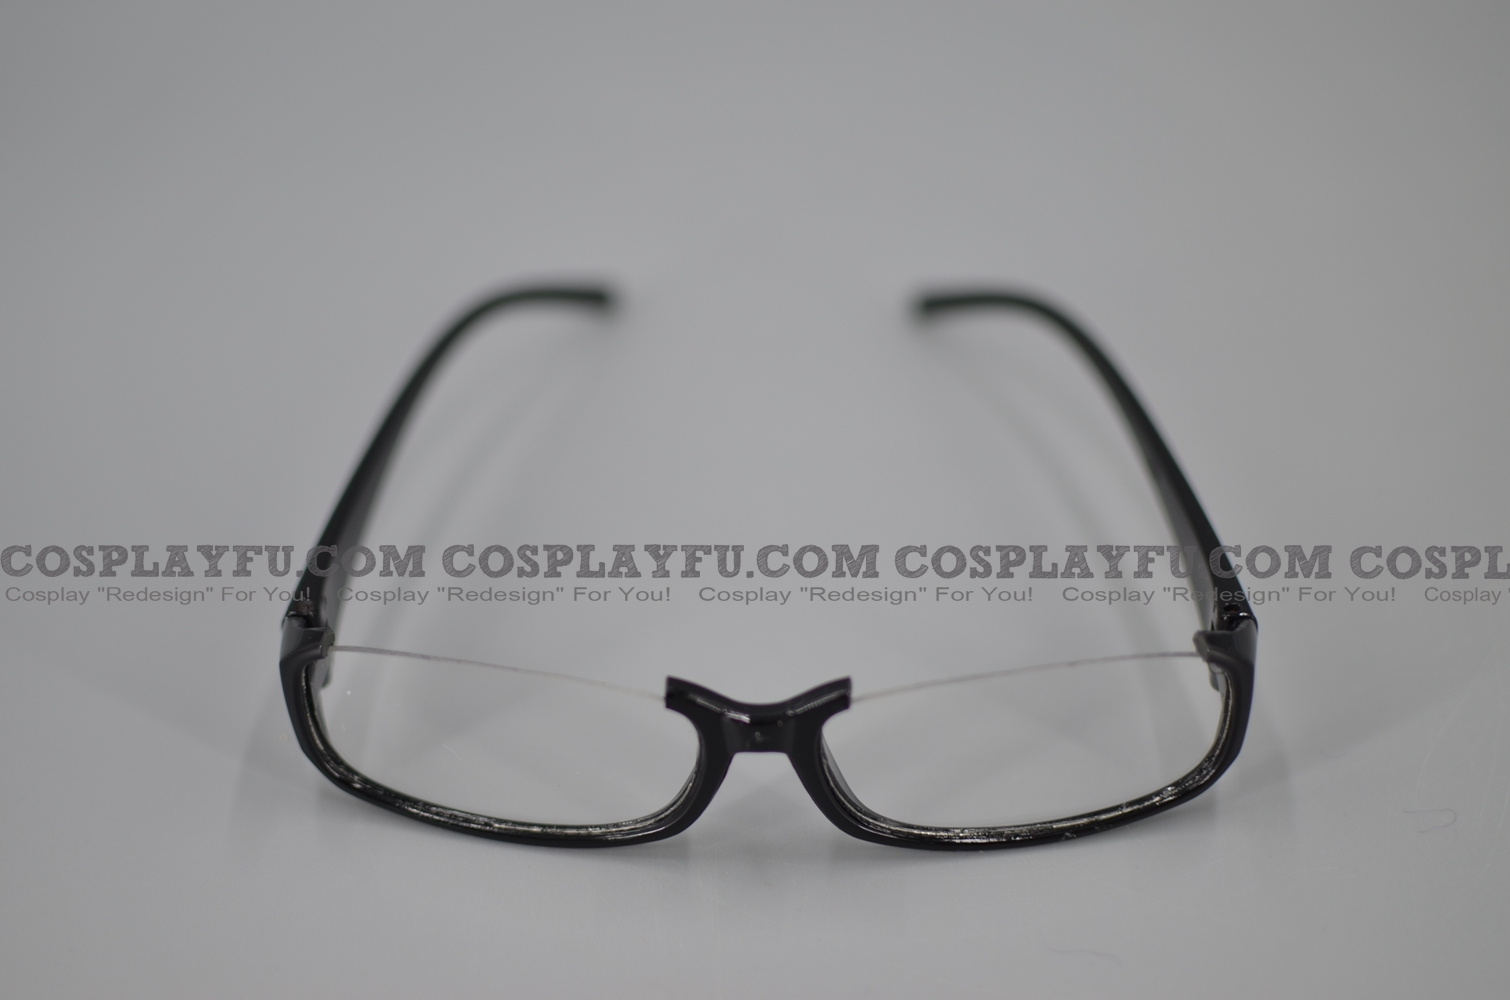 Cosplay Glasses (with Lens)